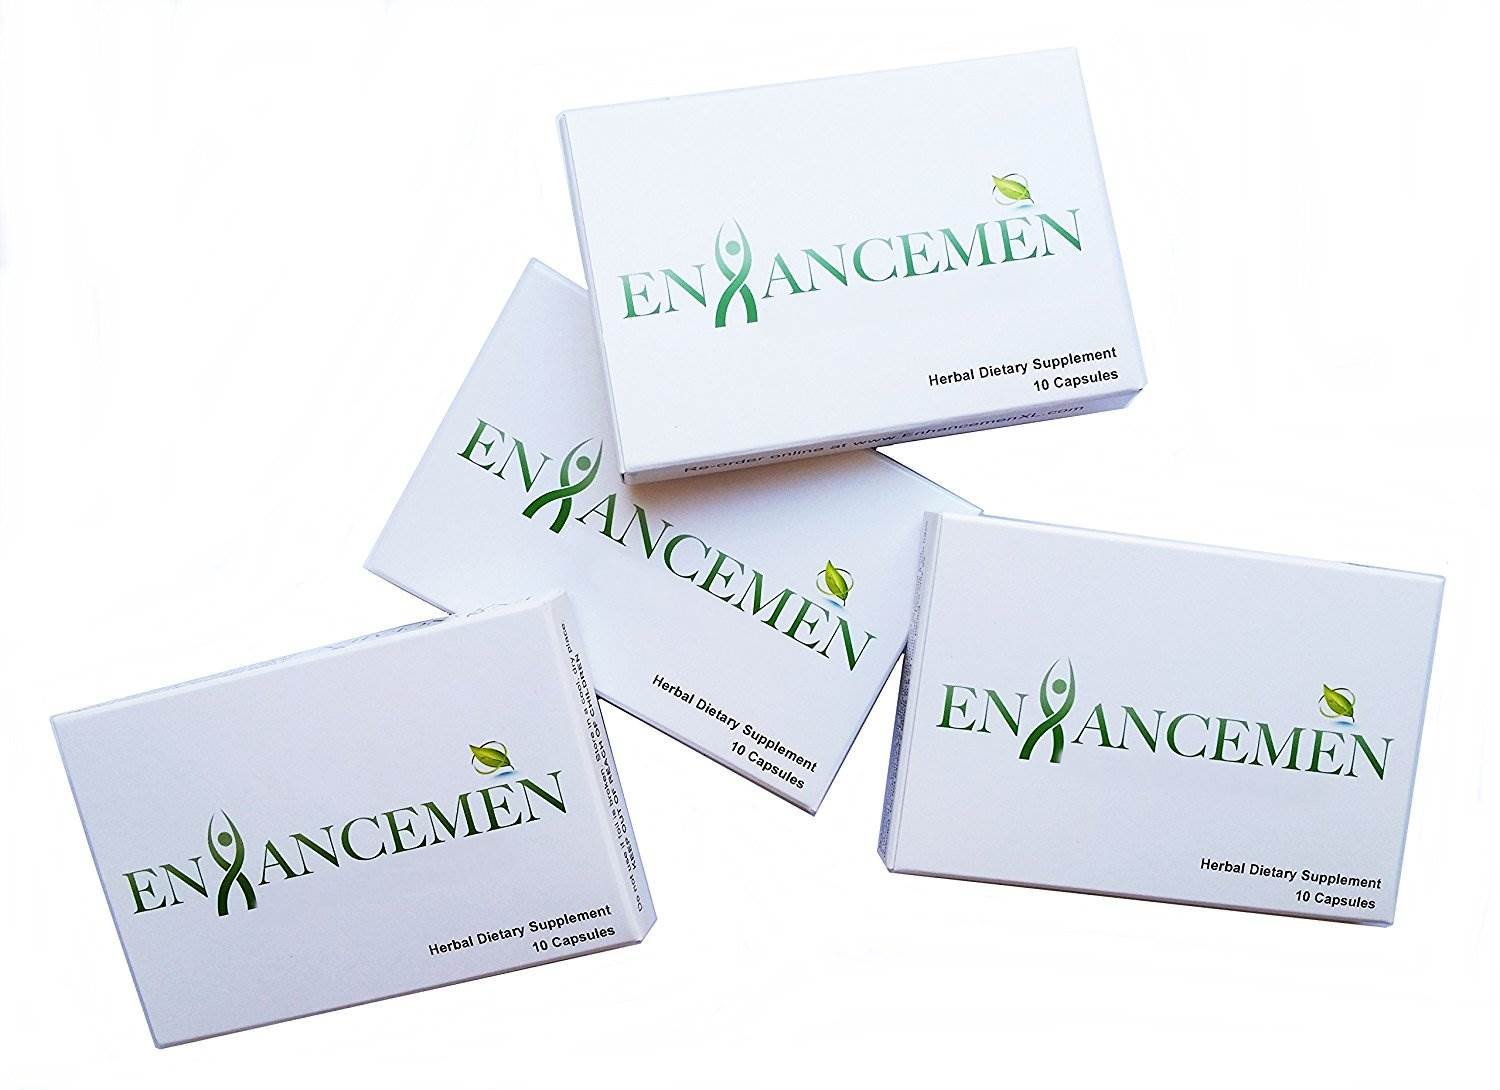 EnhanceMen - The Most Effective Natural Testosterone Booster for Fast Performance Enhancement! (40 Capsules)